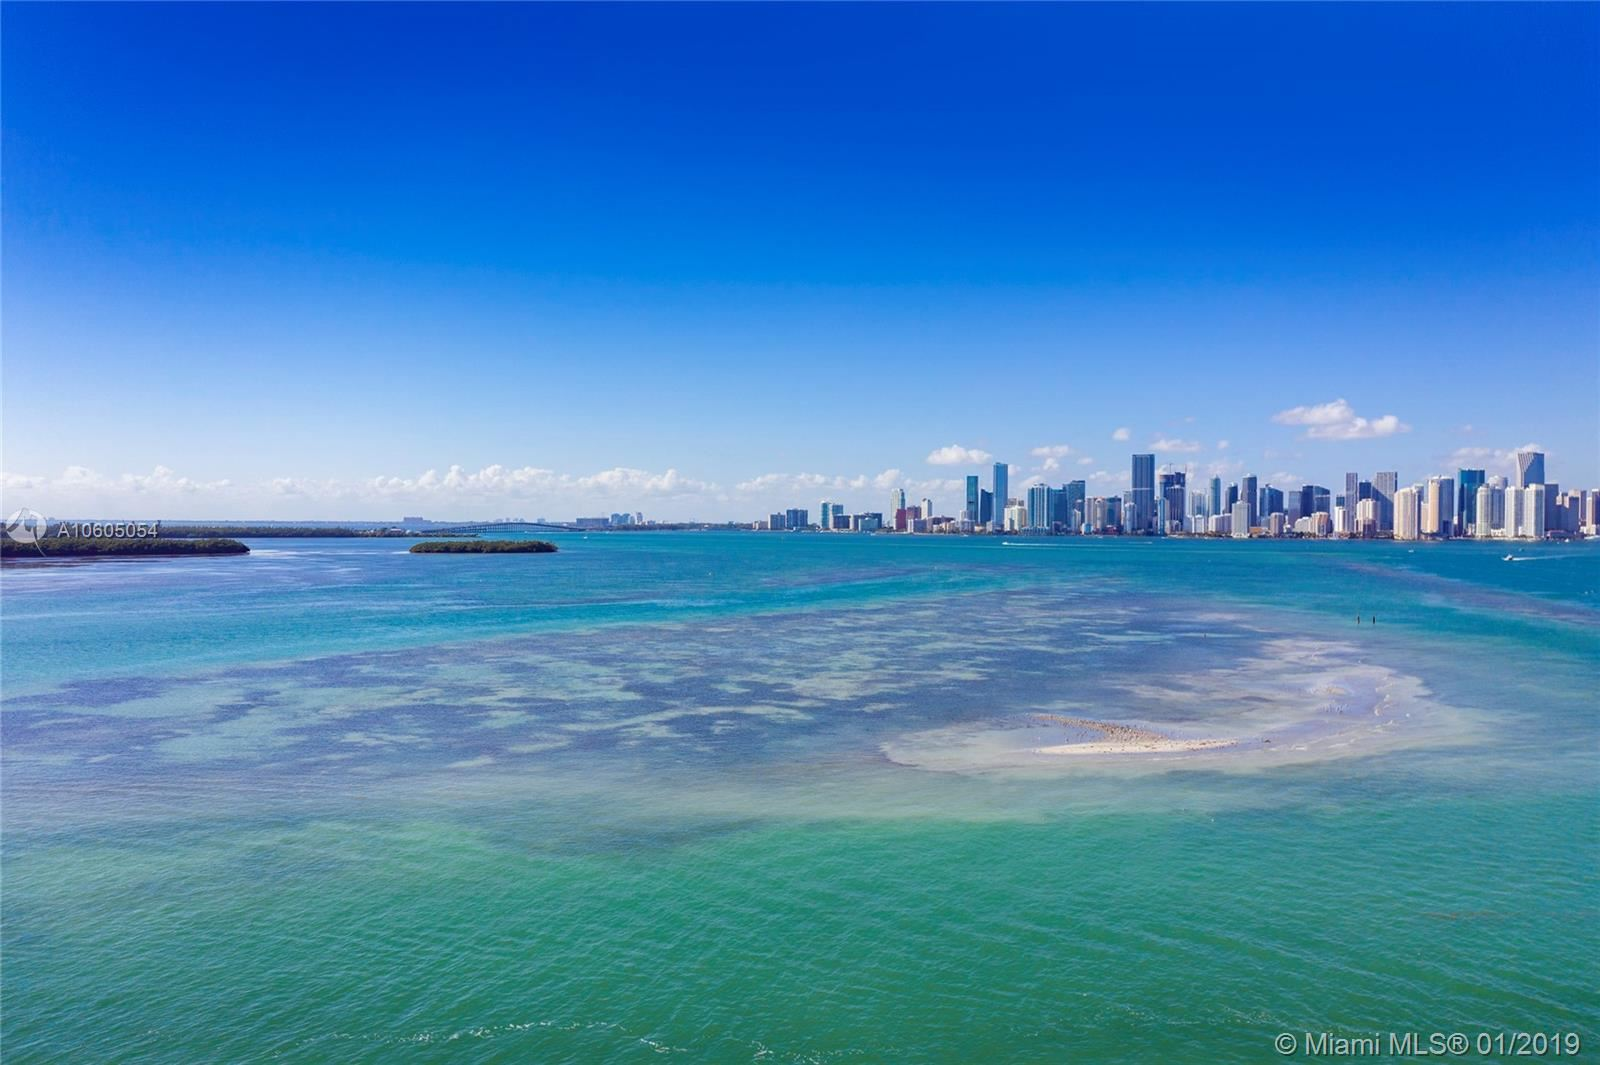 Photo 31 of Listing MLS a10605054 in 5203 Fisher Island Drive #5203 Miami FL 33109